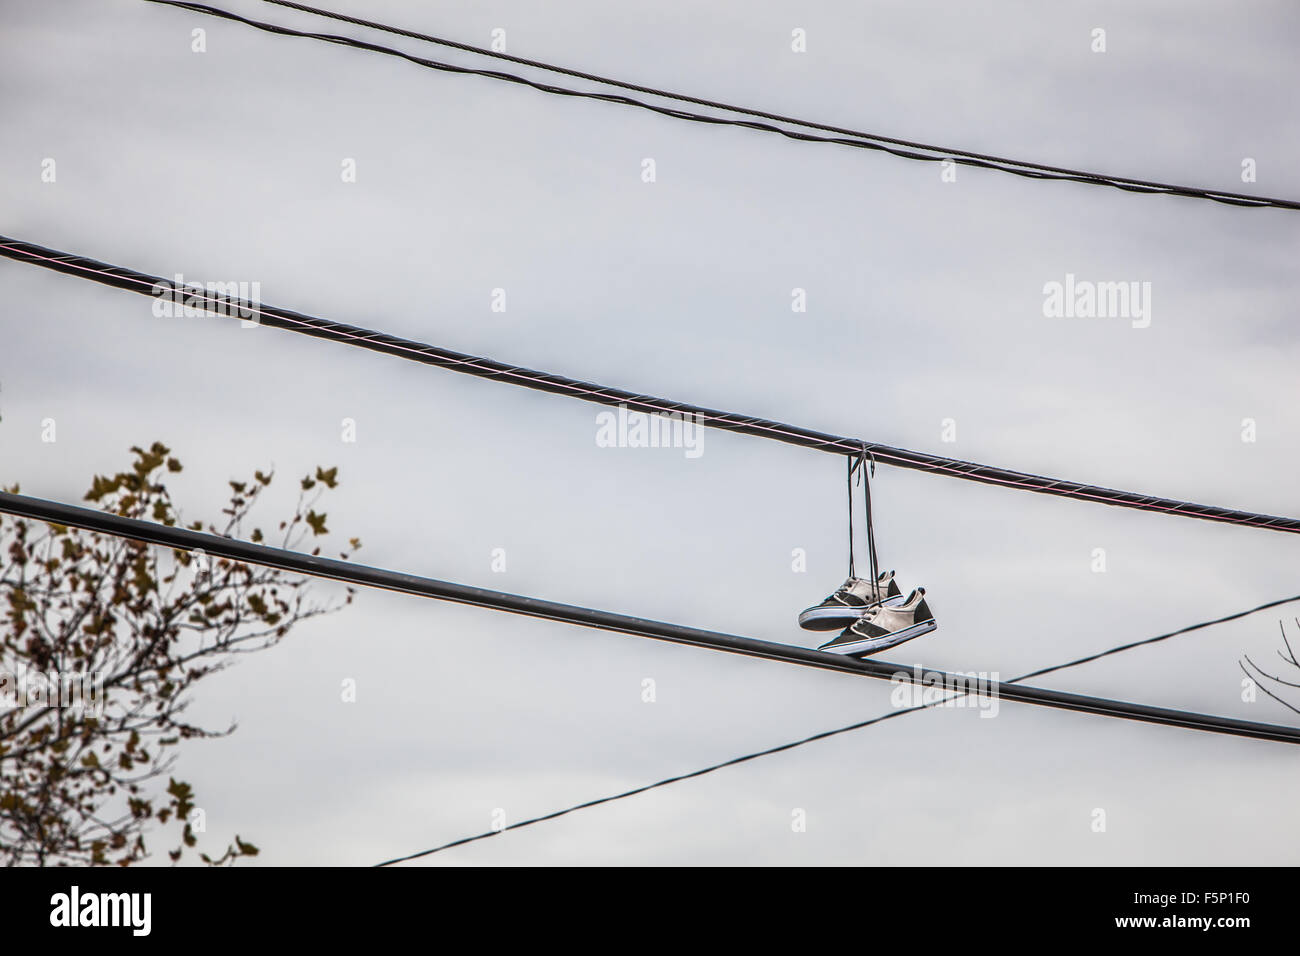 Sneakers on power lines Stock Photo: 89609268 - Alamy